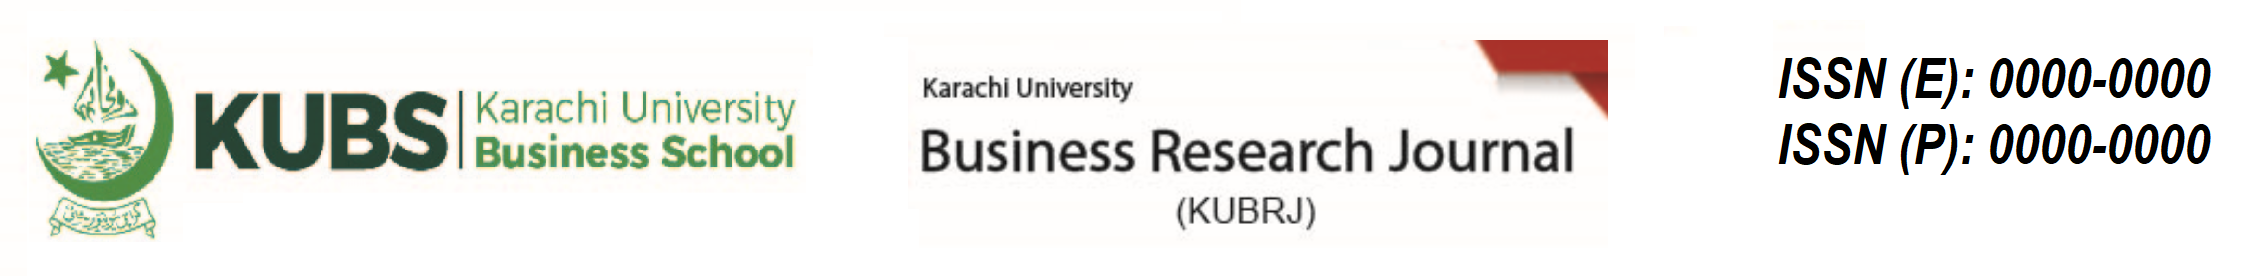 Karachi University Business Research Journal